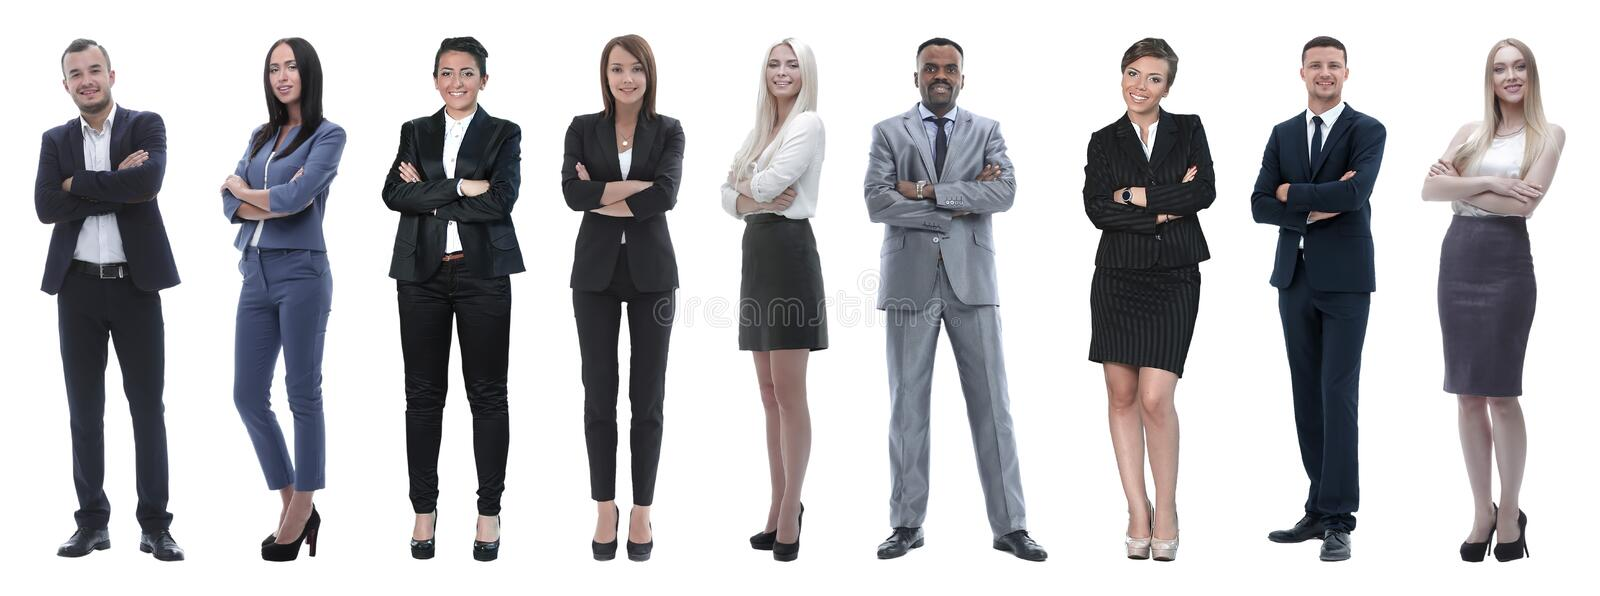 Portrait of friendly business team standing royalty free stock photo